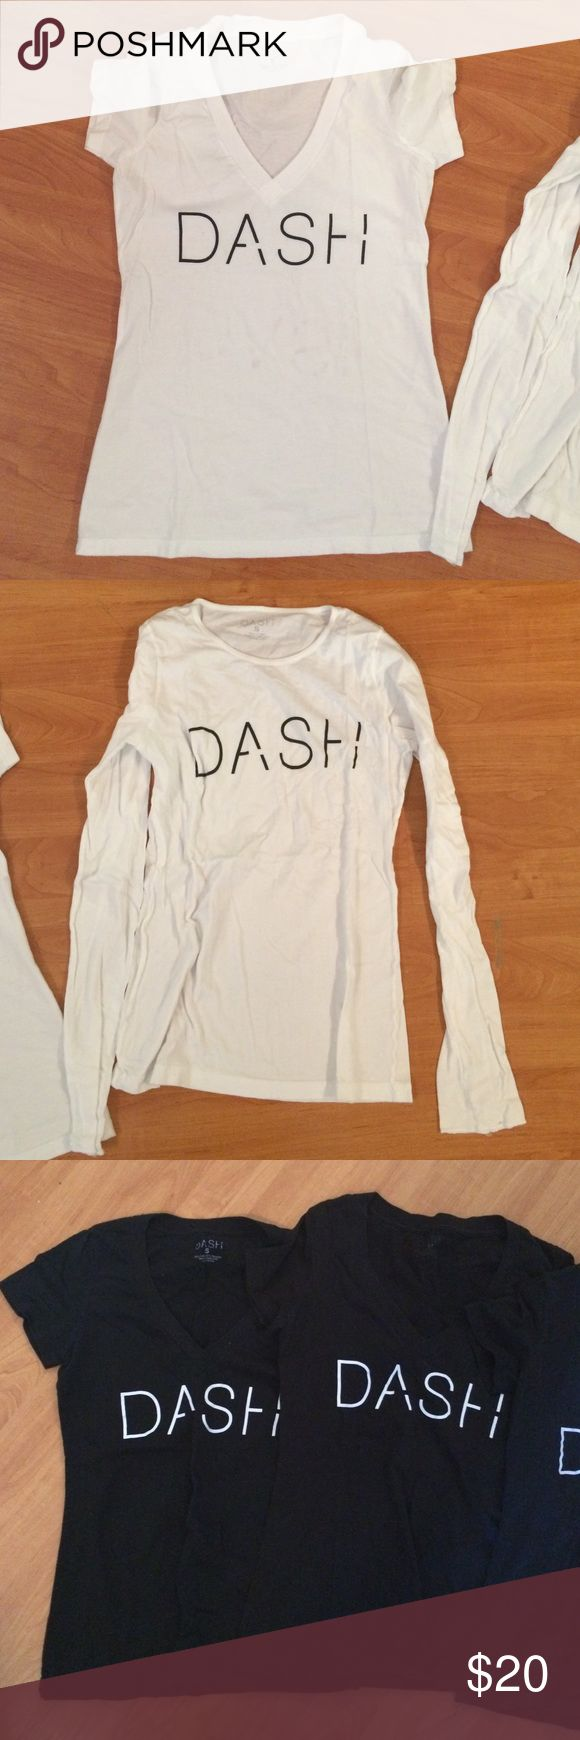 DASH Kardashian store tee Used but in good condition! I have 5 DASH boutique tee's from the Kardashians Dash Boutique in Miami Beach. Kardashian Kollection Tops